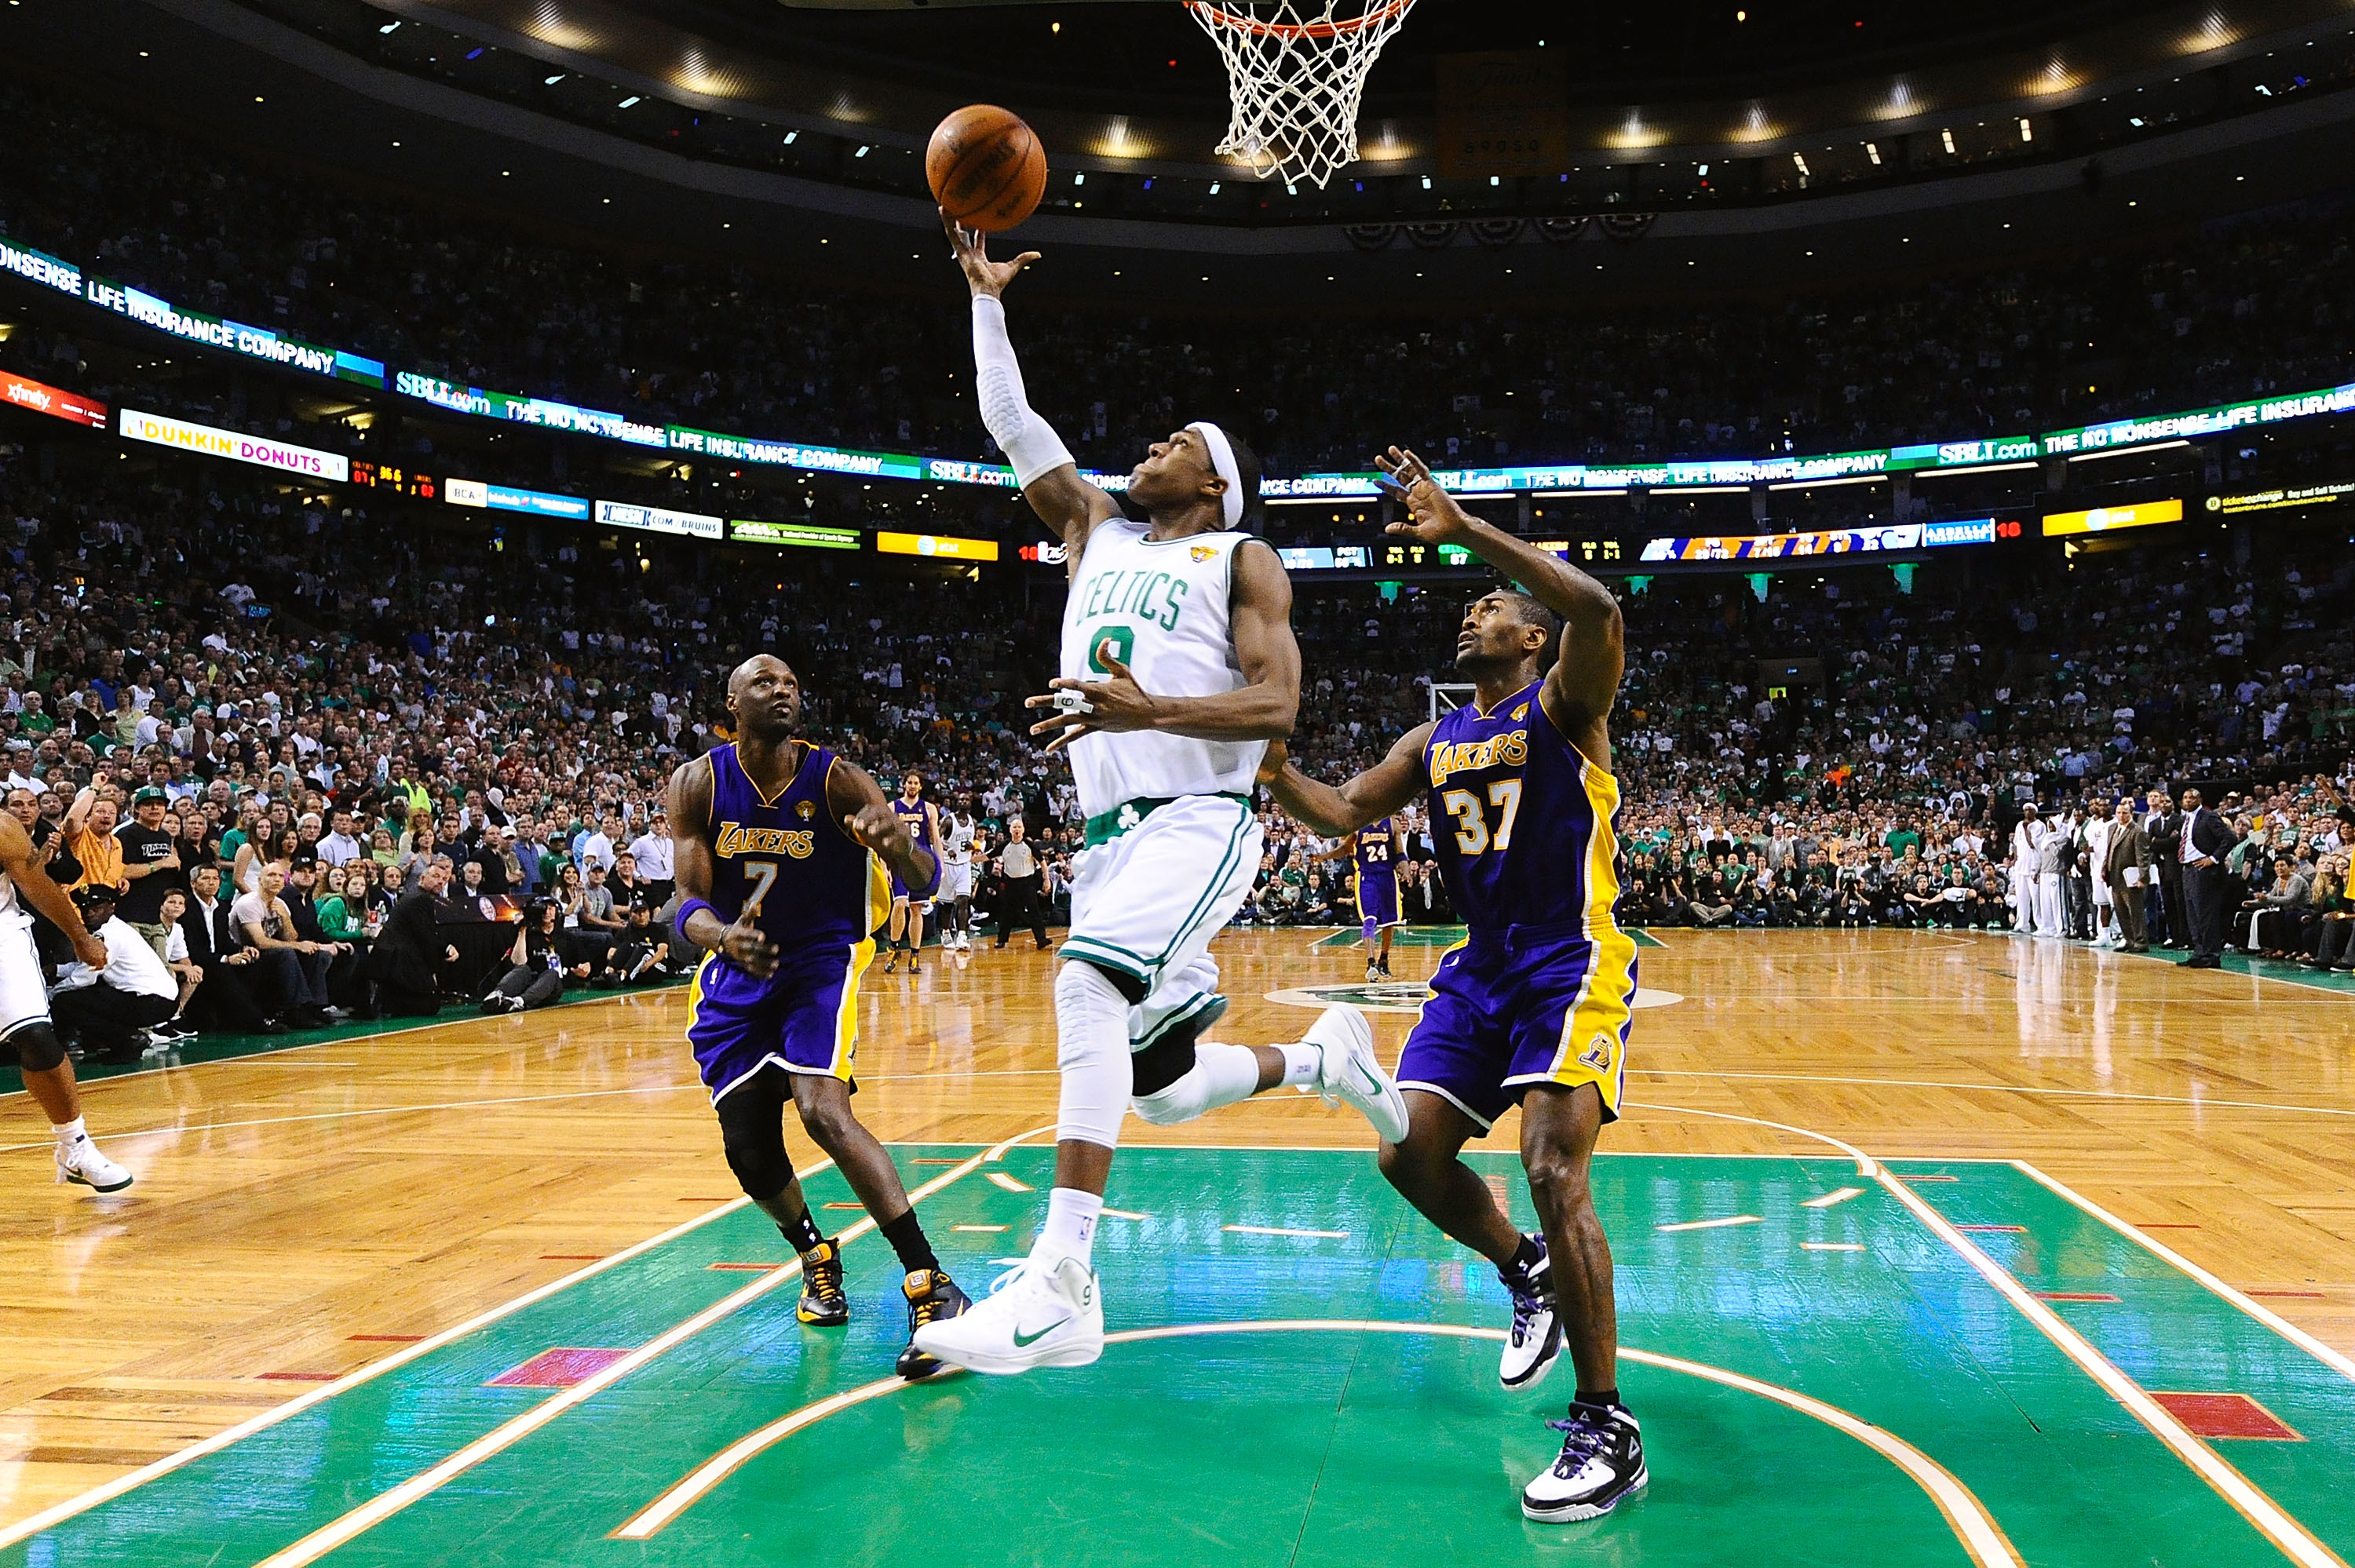 BOSTON - JUNE 13:  Rajon Rondo #9 of the Boston Celtics goes to the basket against Lamar Odom #7 and Ron Artest #37 of the Los Angeles Lakers during Game Five of the 2010 NBA Finals on June 13, 2010 at TD Garden in Boston, Massachusetts. NOTE TO USER: Use